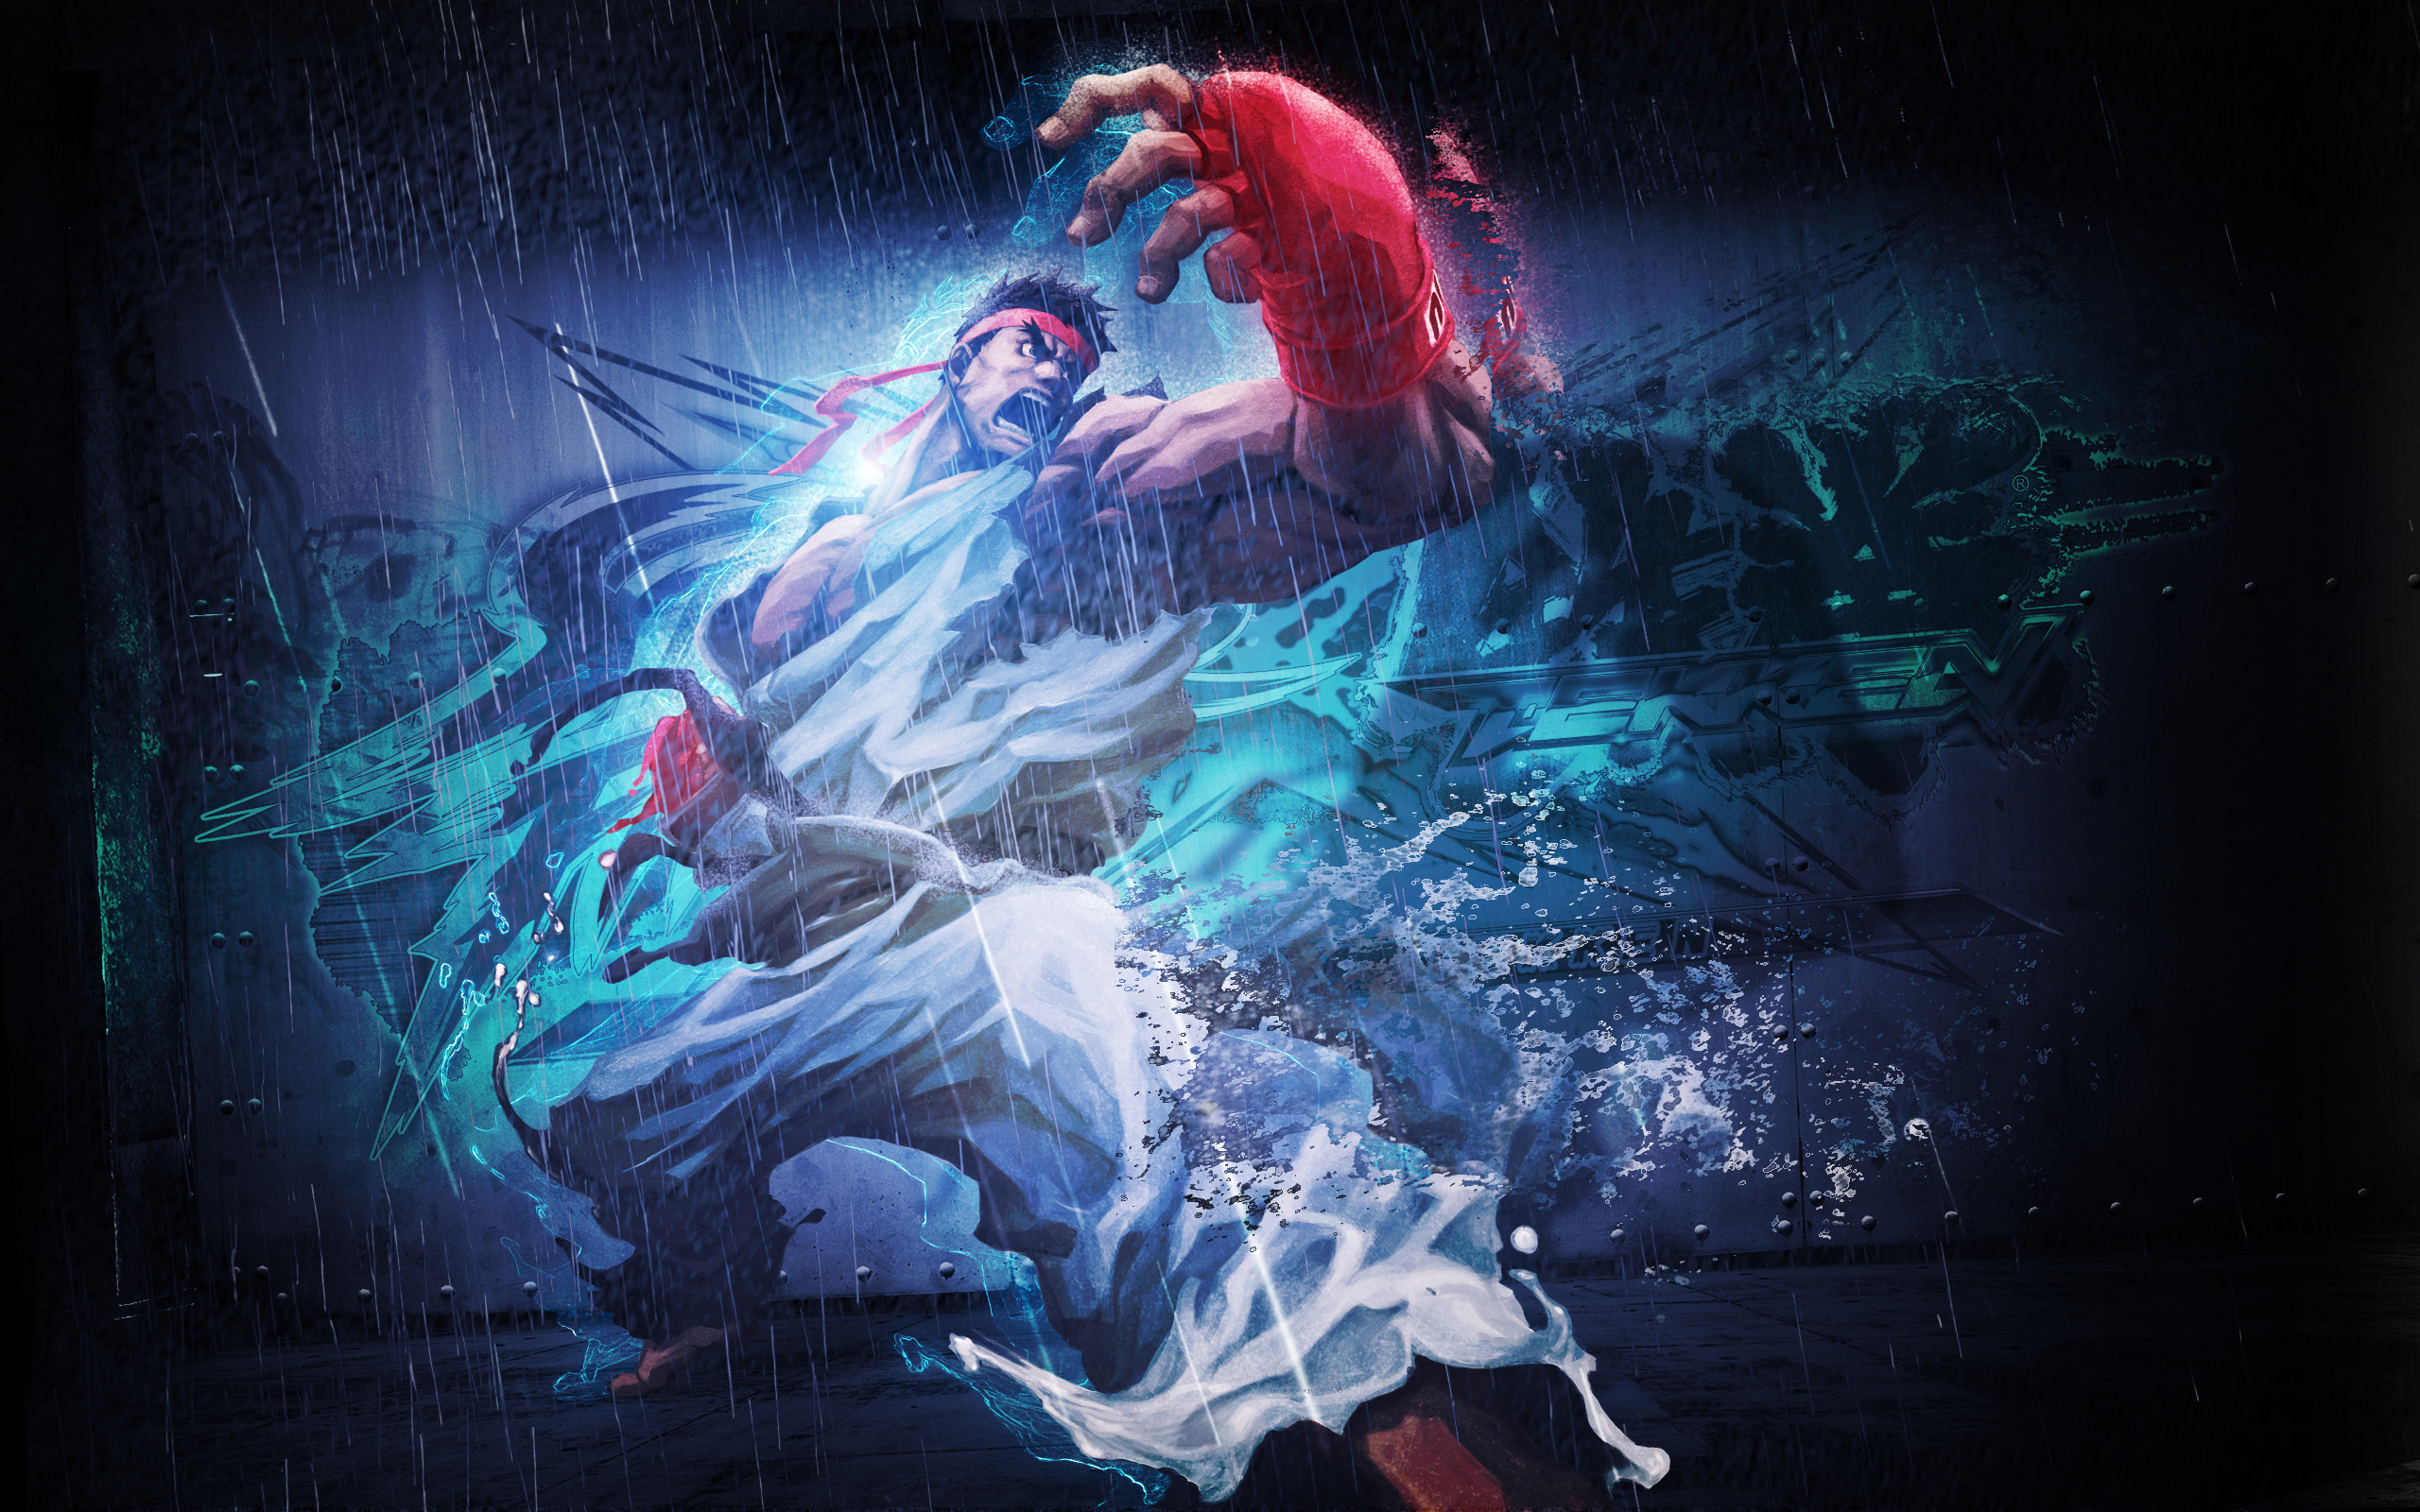 2560x1600 Ryu in The Street Fighter Wallpapers HD Wallpapers